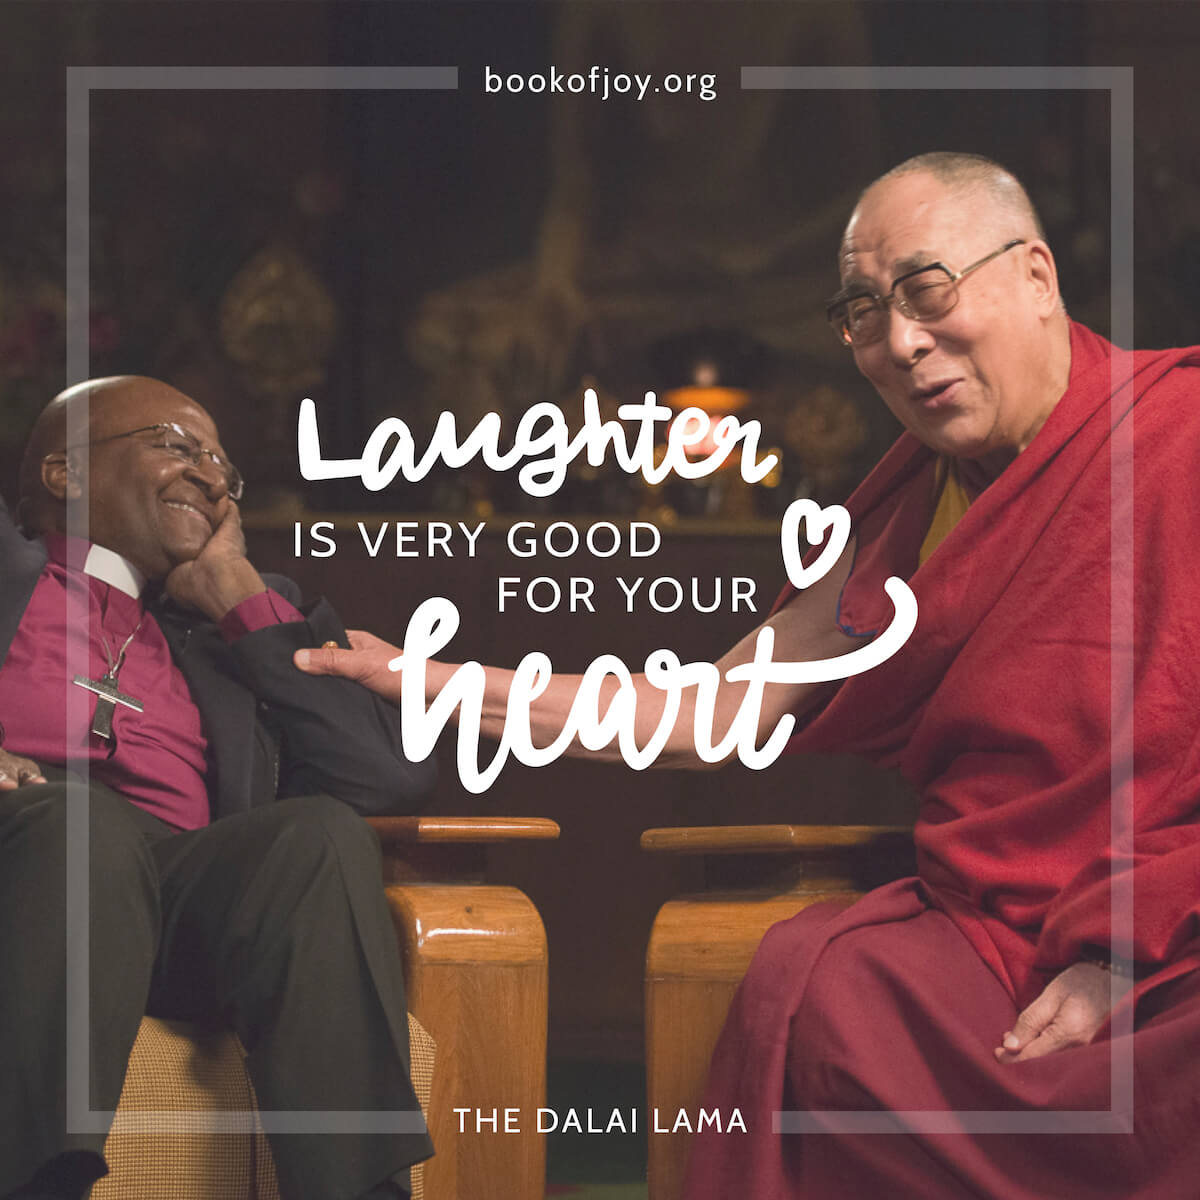 The Book of Joy Poster Campaign Lettering Desmond Tutu Dalai Lama